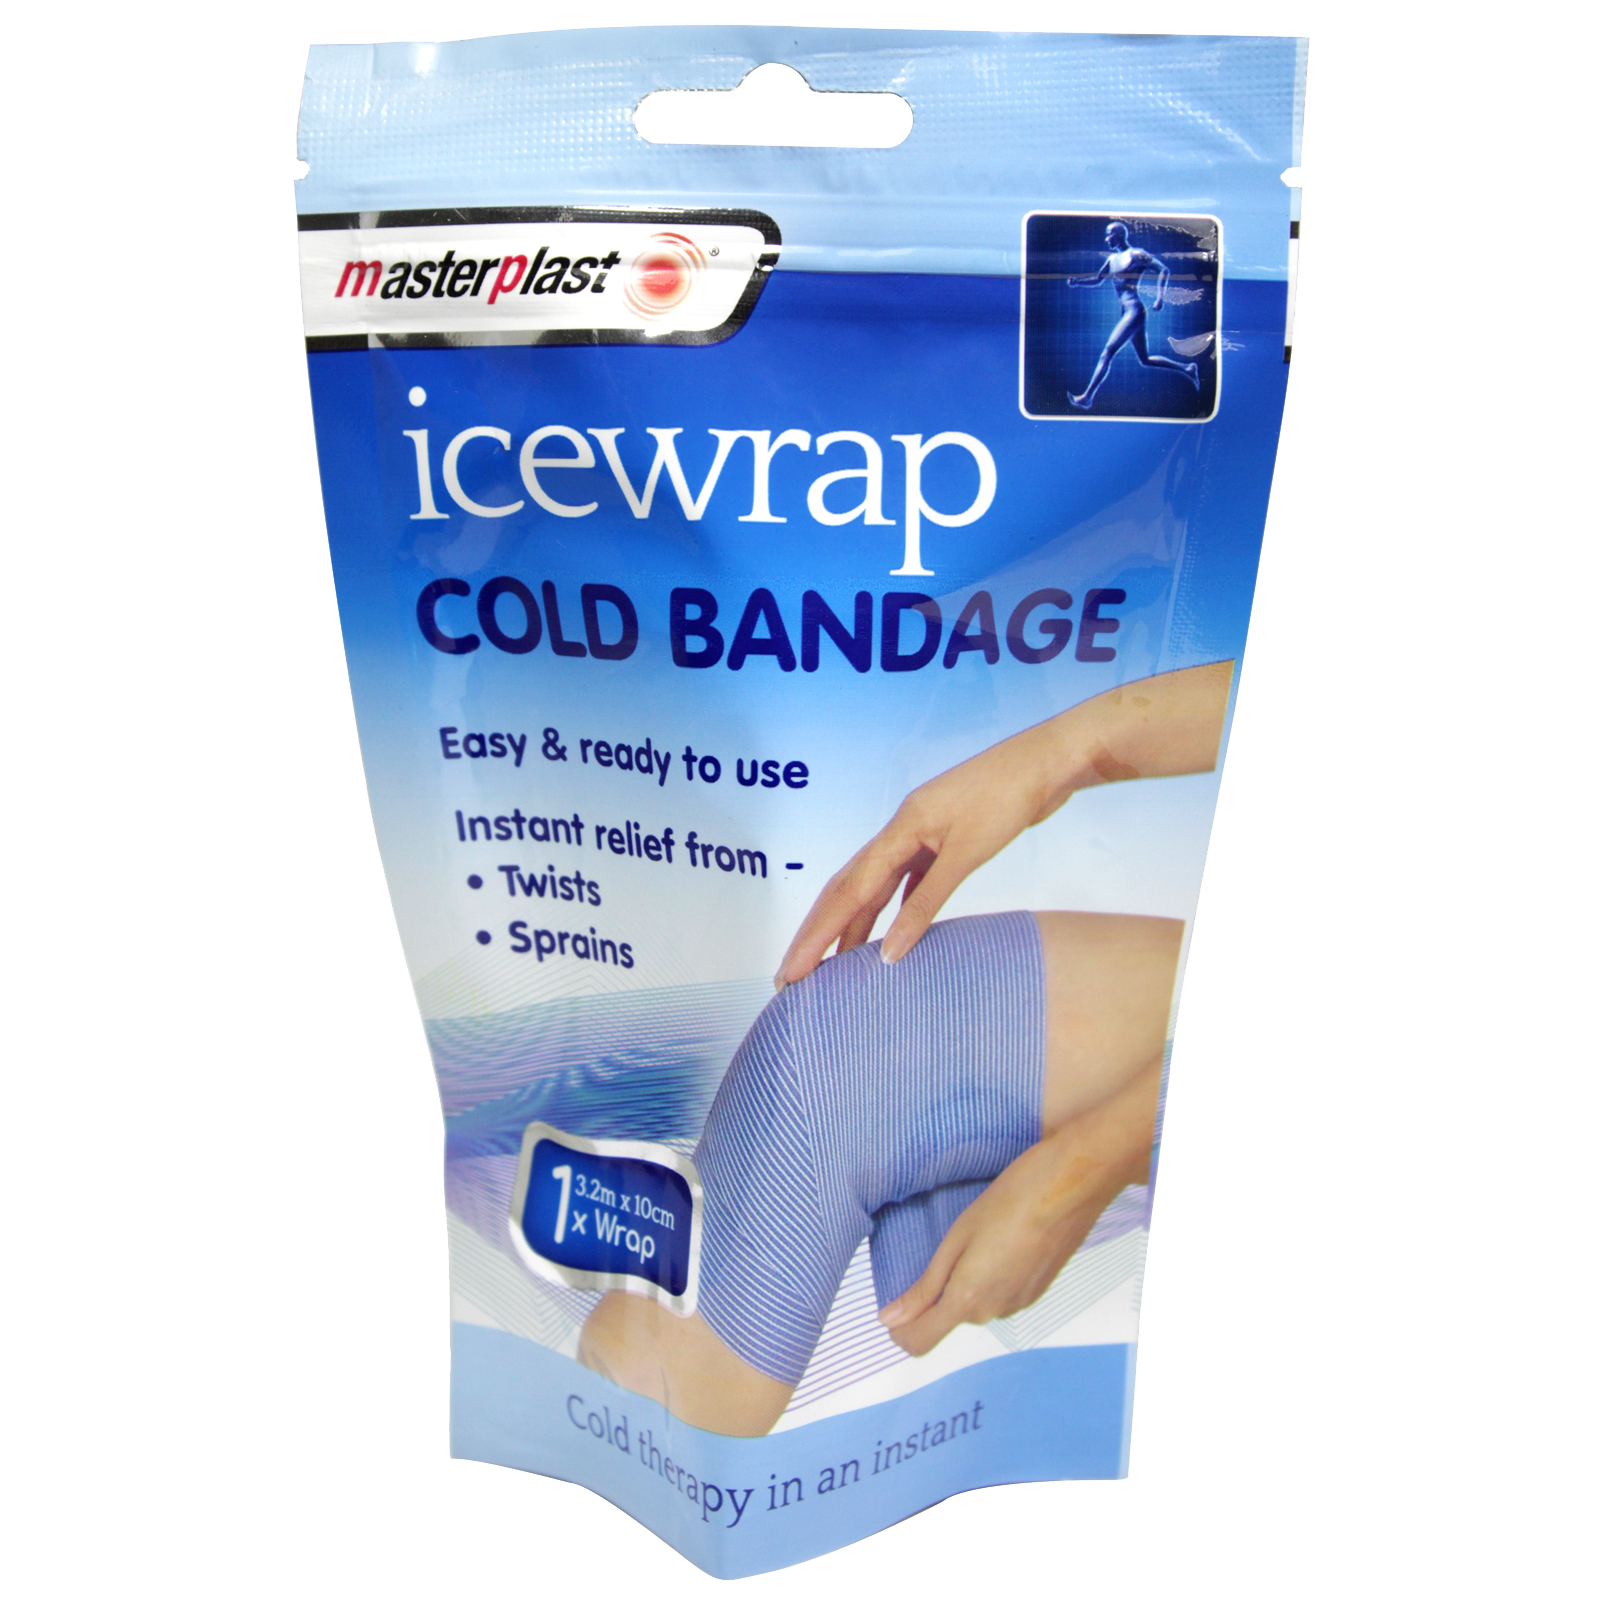 MASTERPLAST ICE WRAP COLD BANDAGE